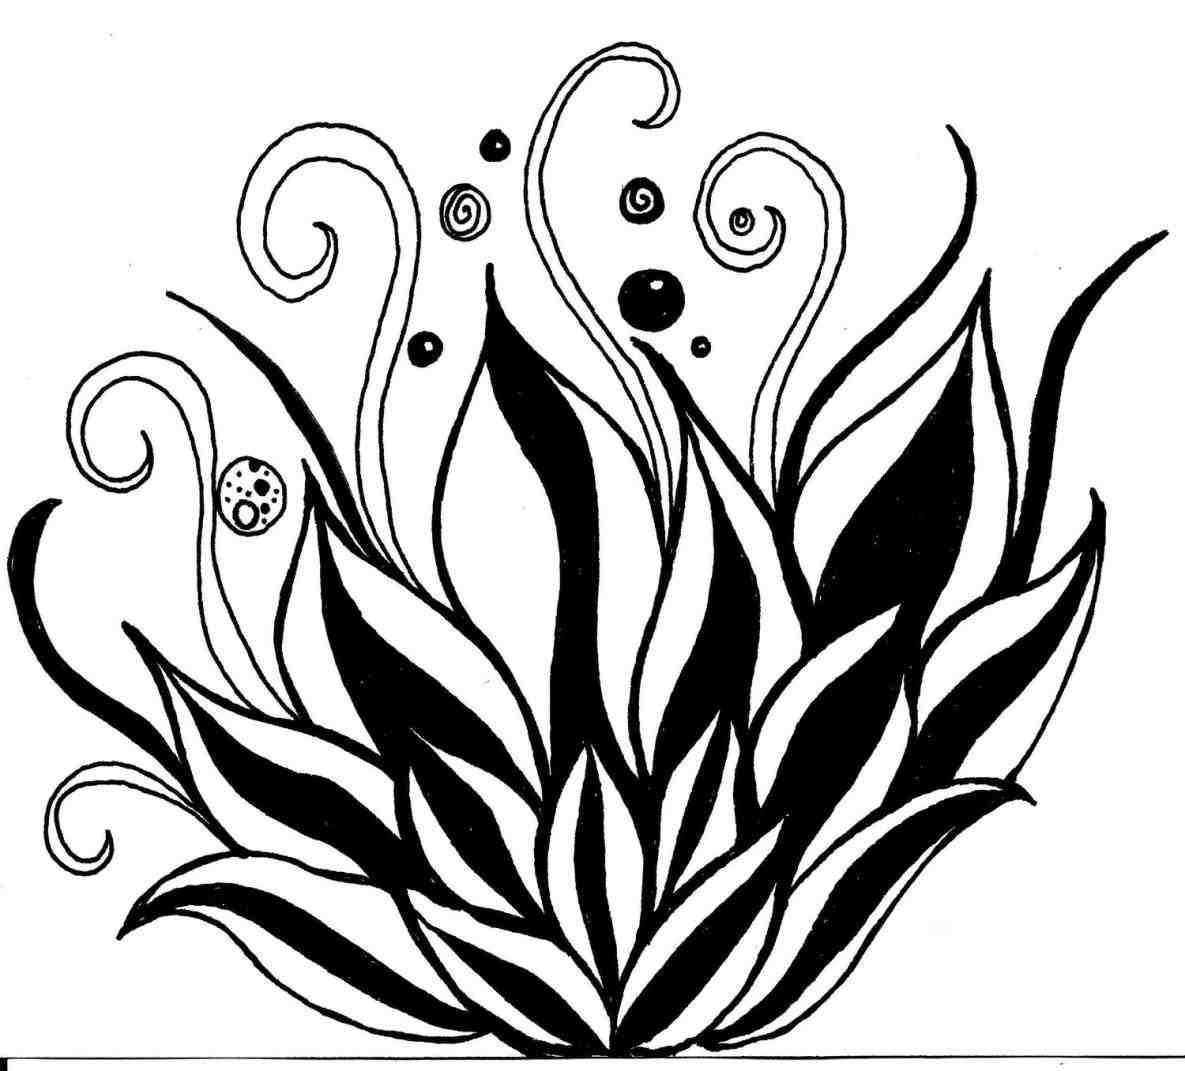 1185x1071 Drawing Ideas For Beginners Flowers